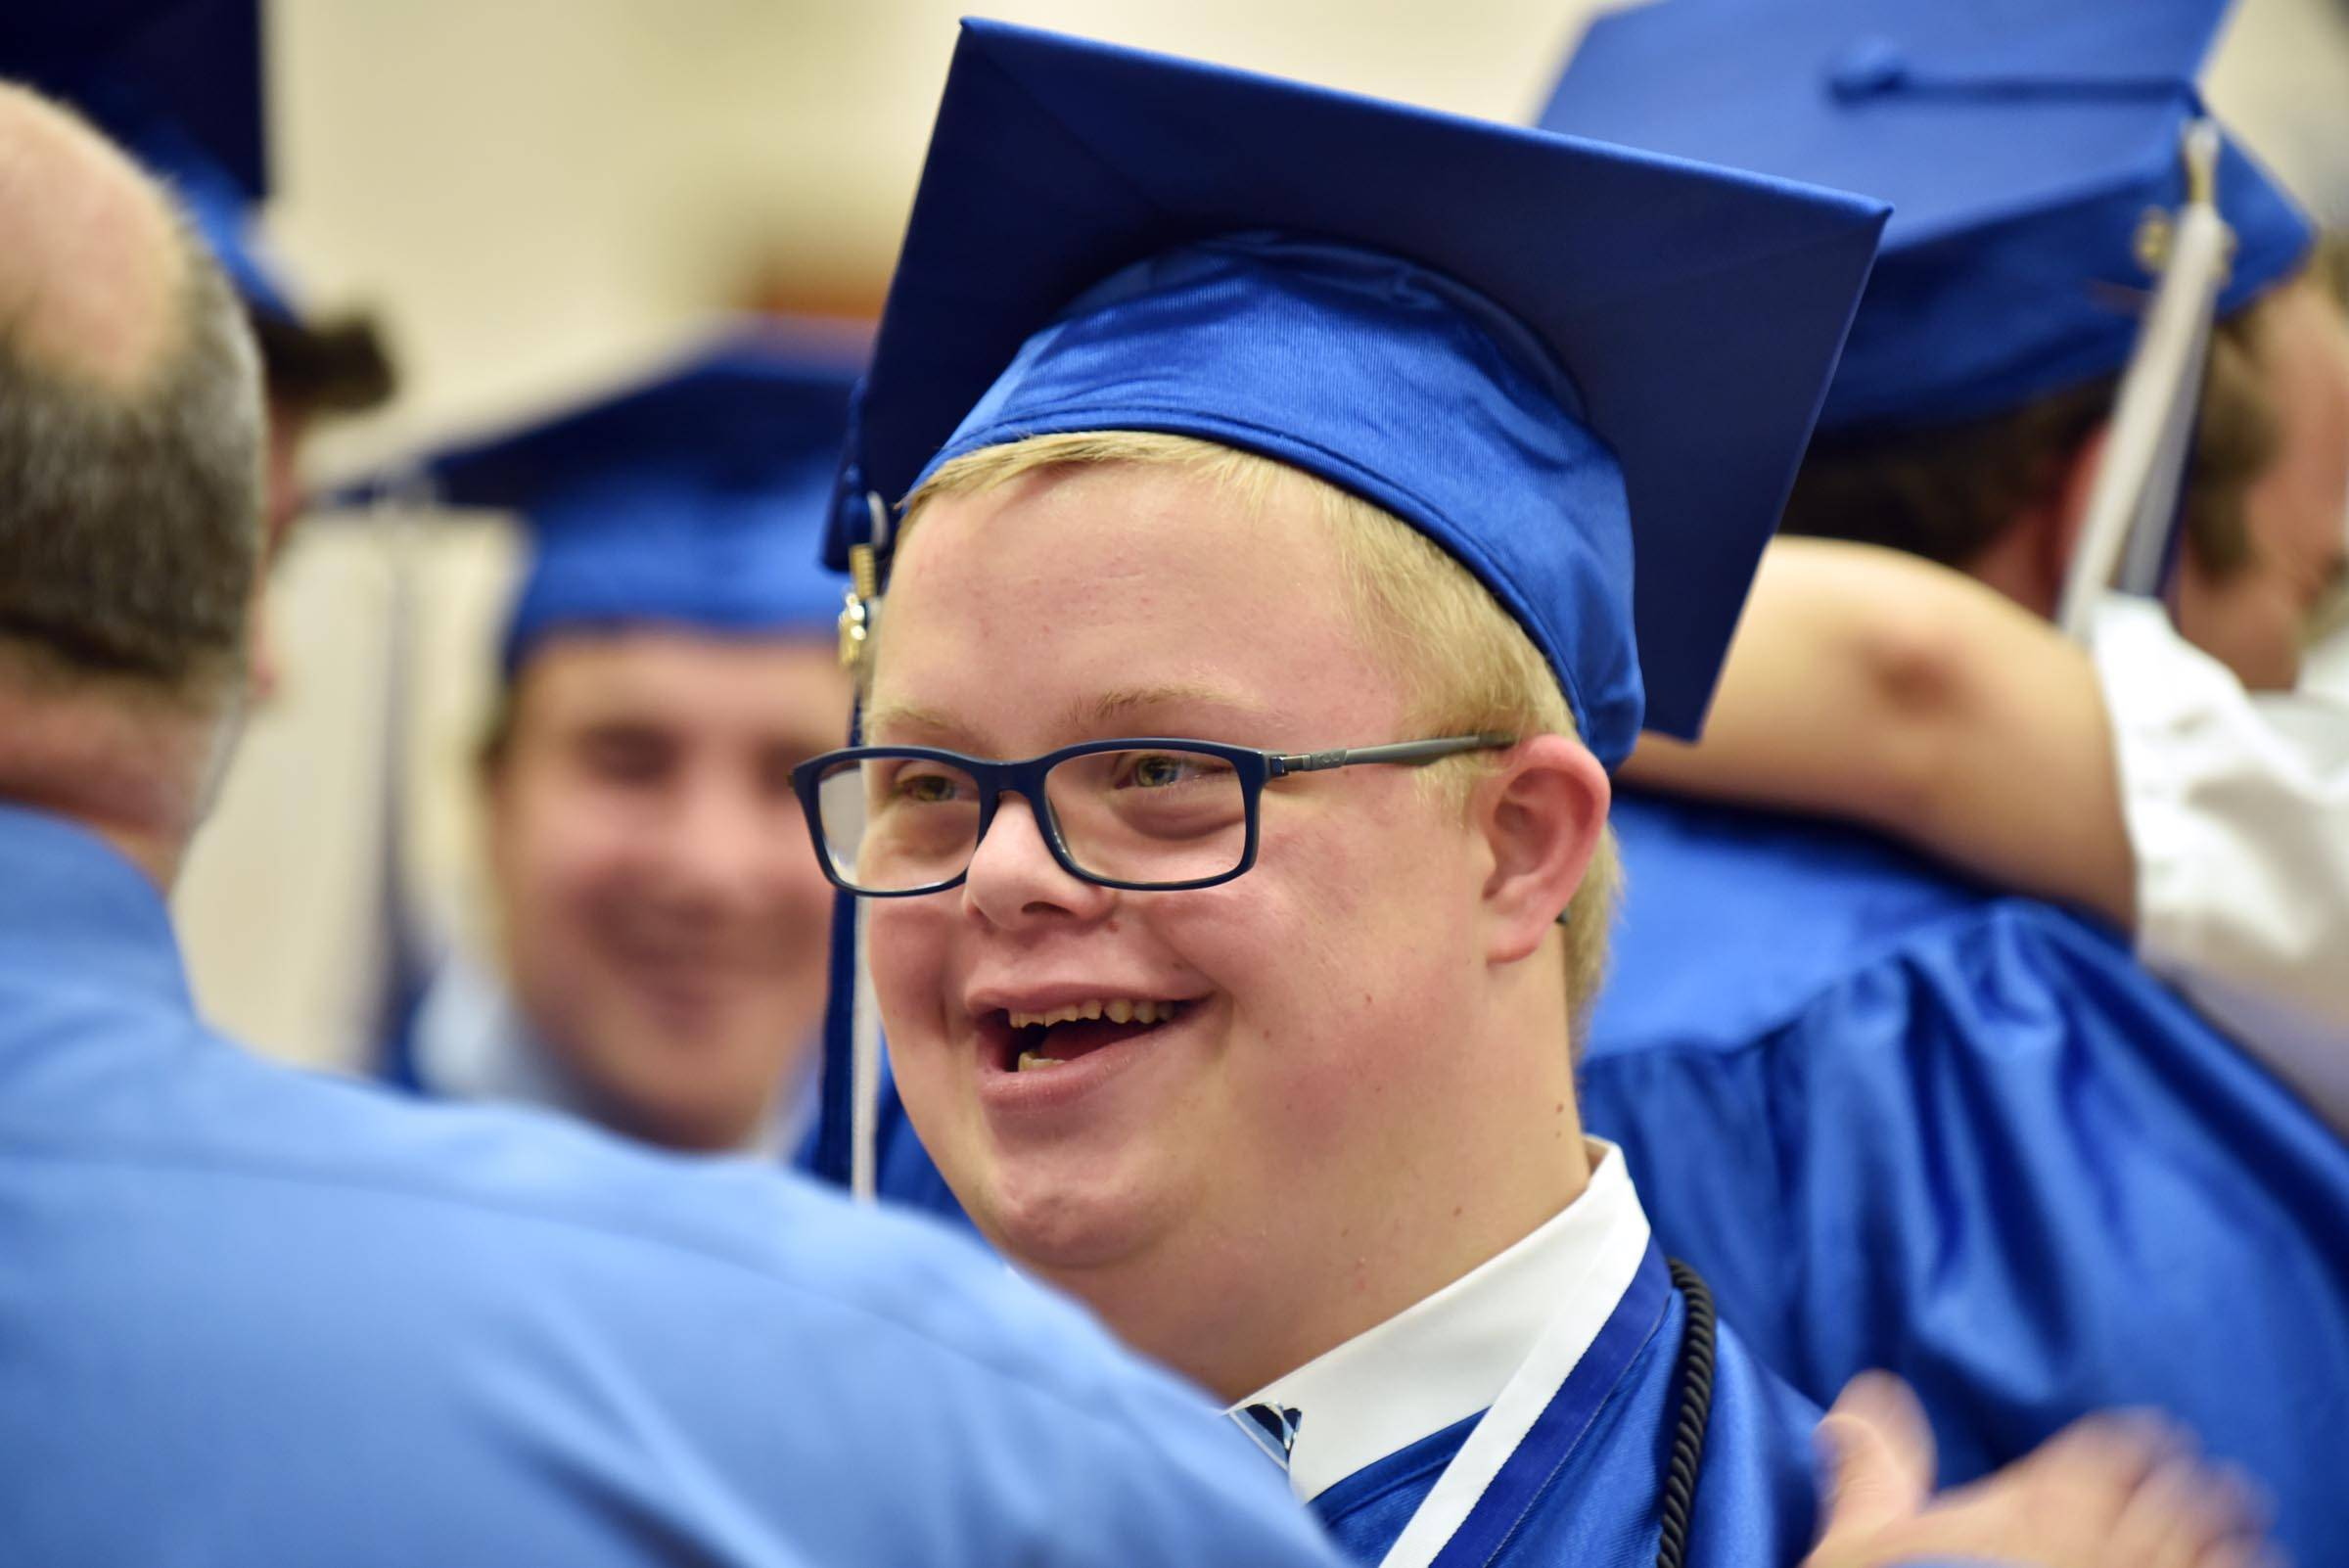 Gradute Nicholas Pesce laughs as he gets ready at Lake Zurich High School graduation Sunday at the school.